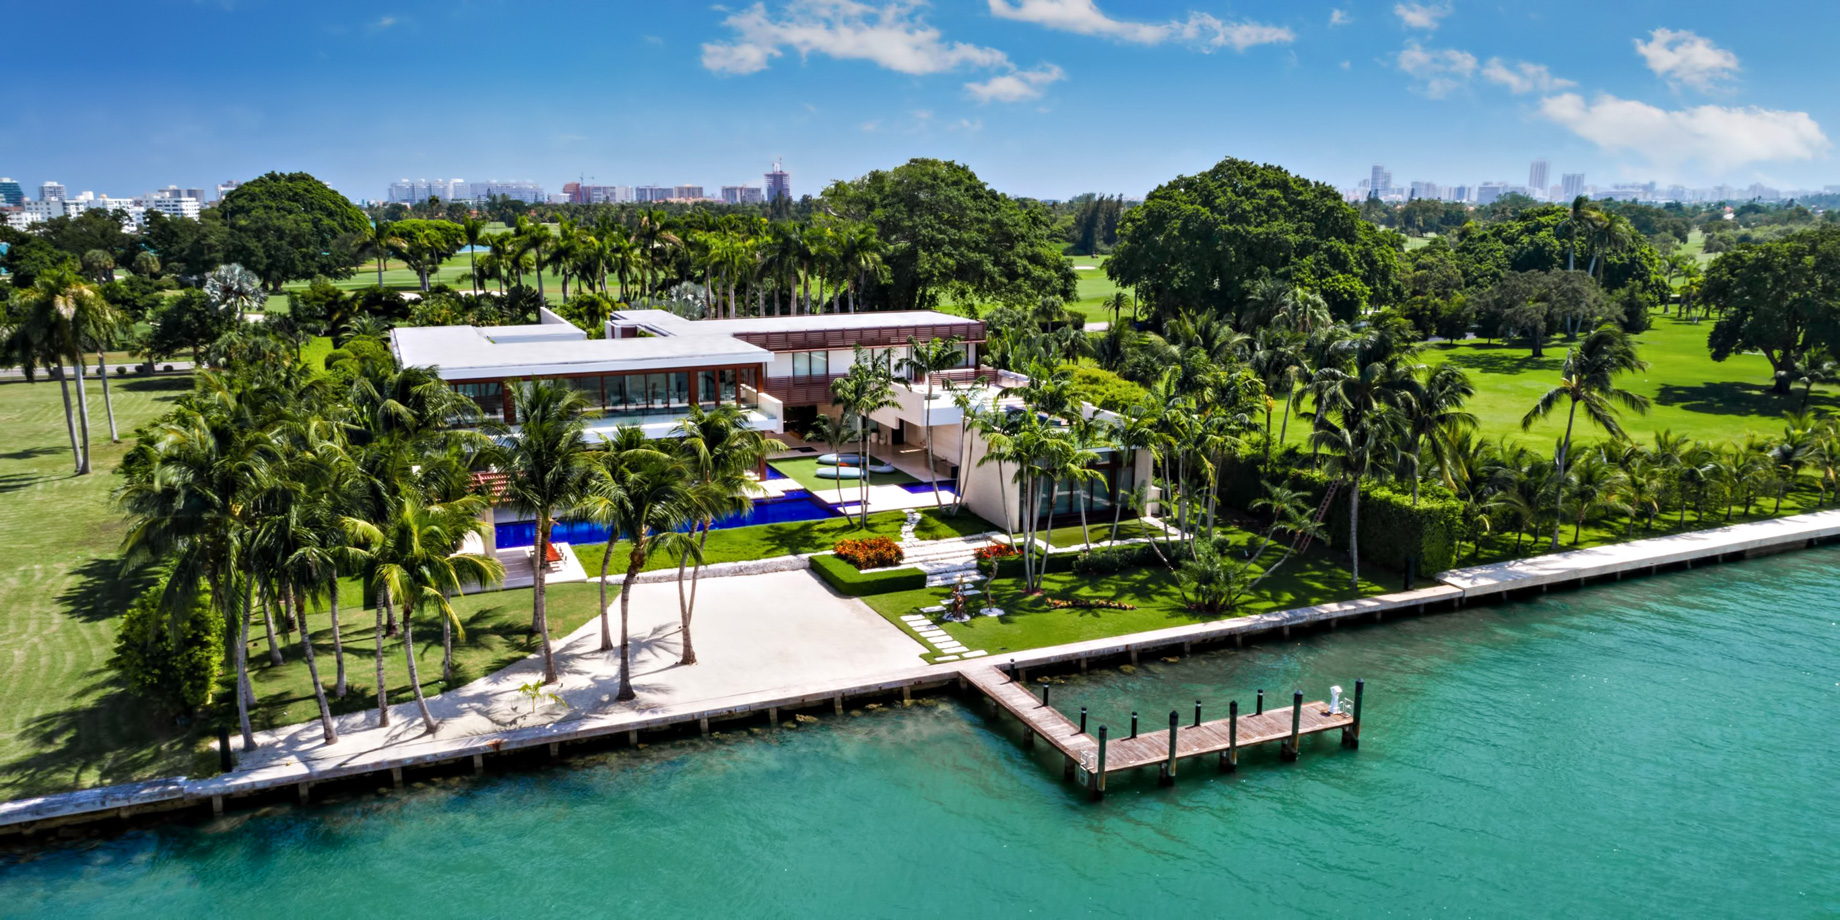 Pano - 3 Indian Creek Island Luxury Estate - Miami Beach, FL, USA